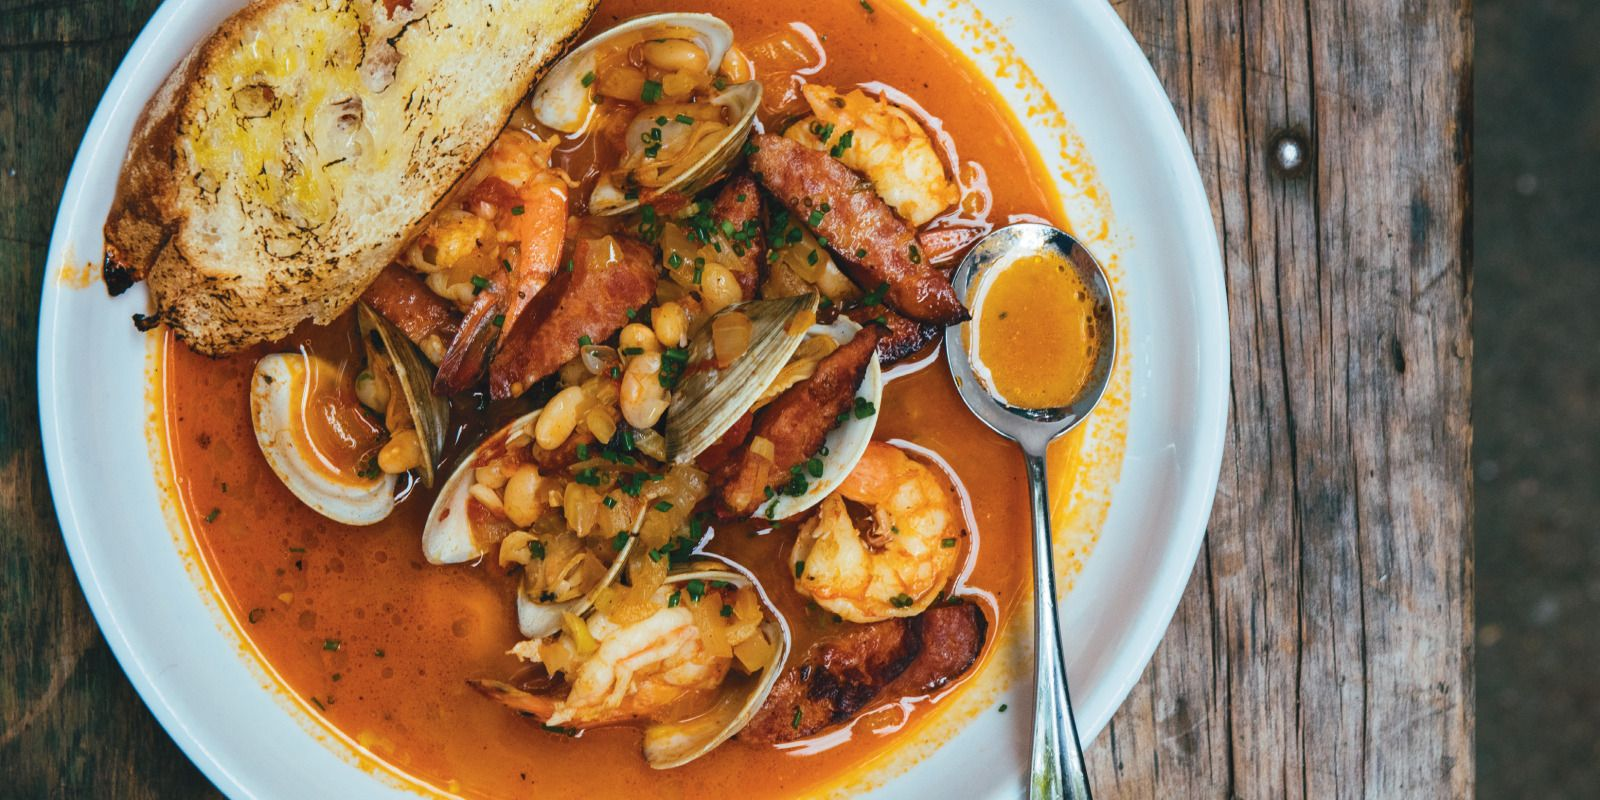 Shrimp and clam stew with tomato-fennel broth from Sylvain in New Orleans via The Local Palate